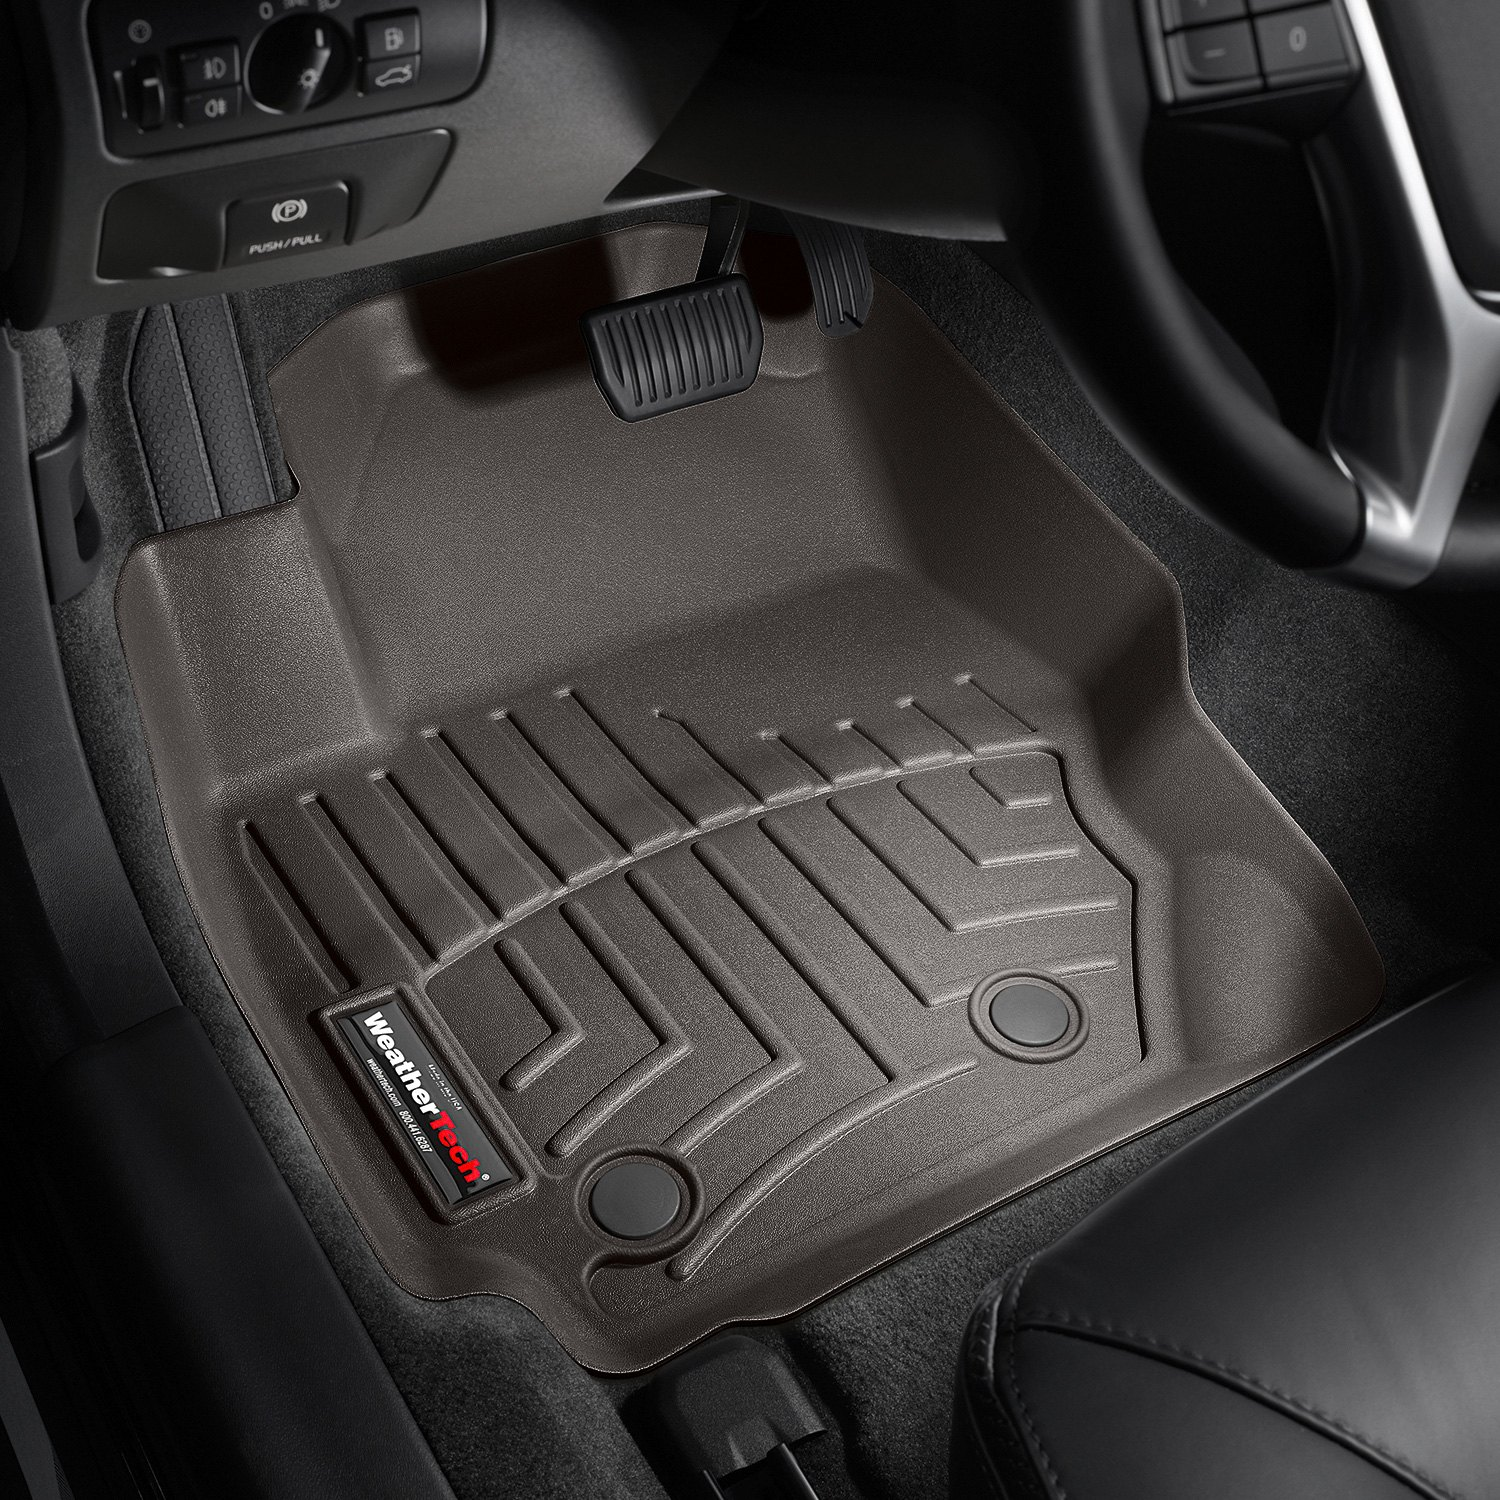 buy weathertech floor mats in store